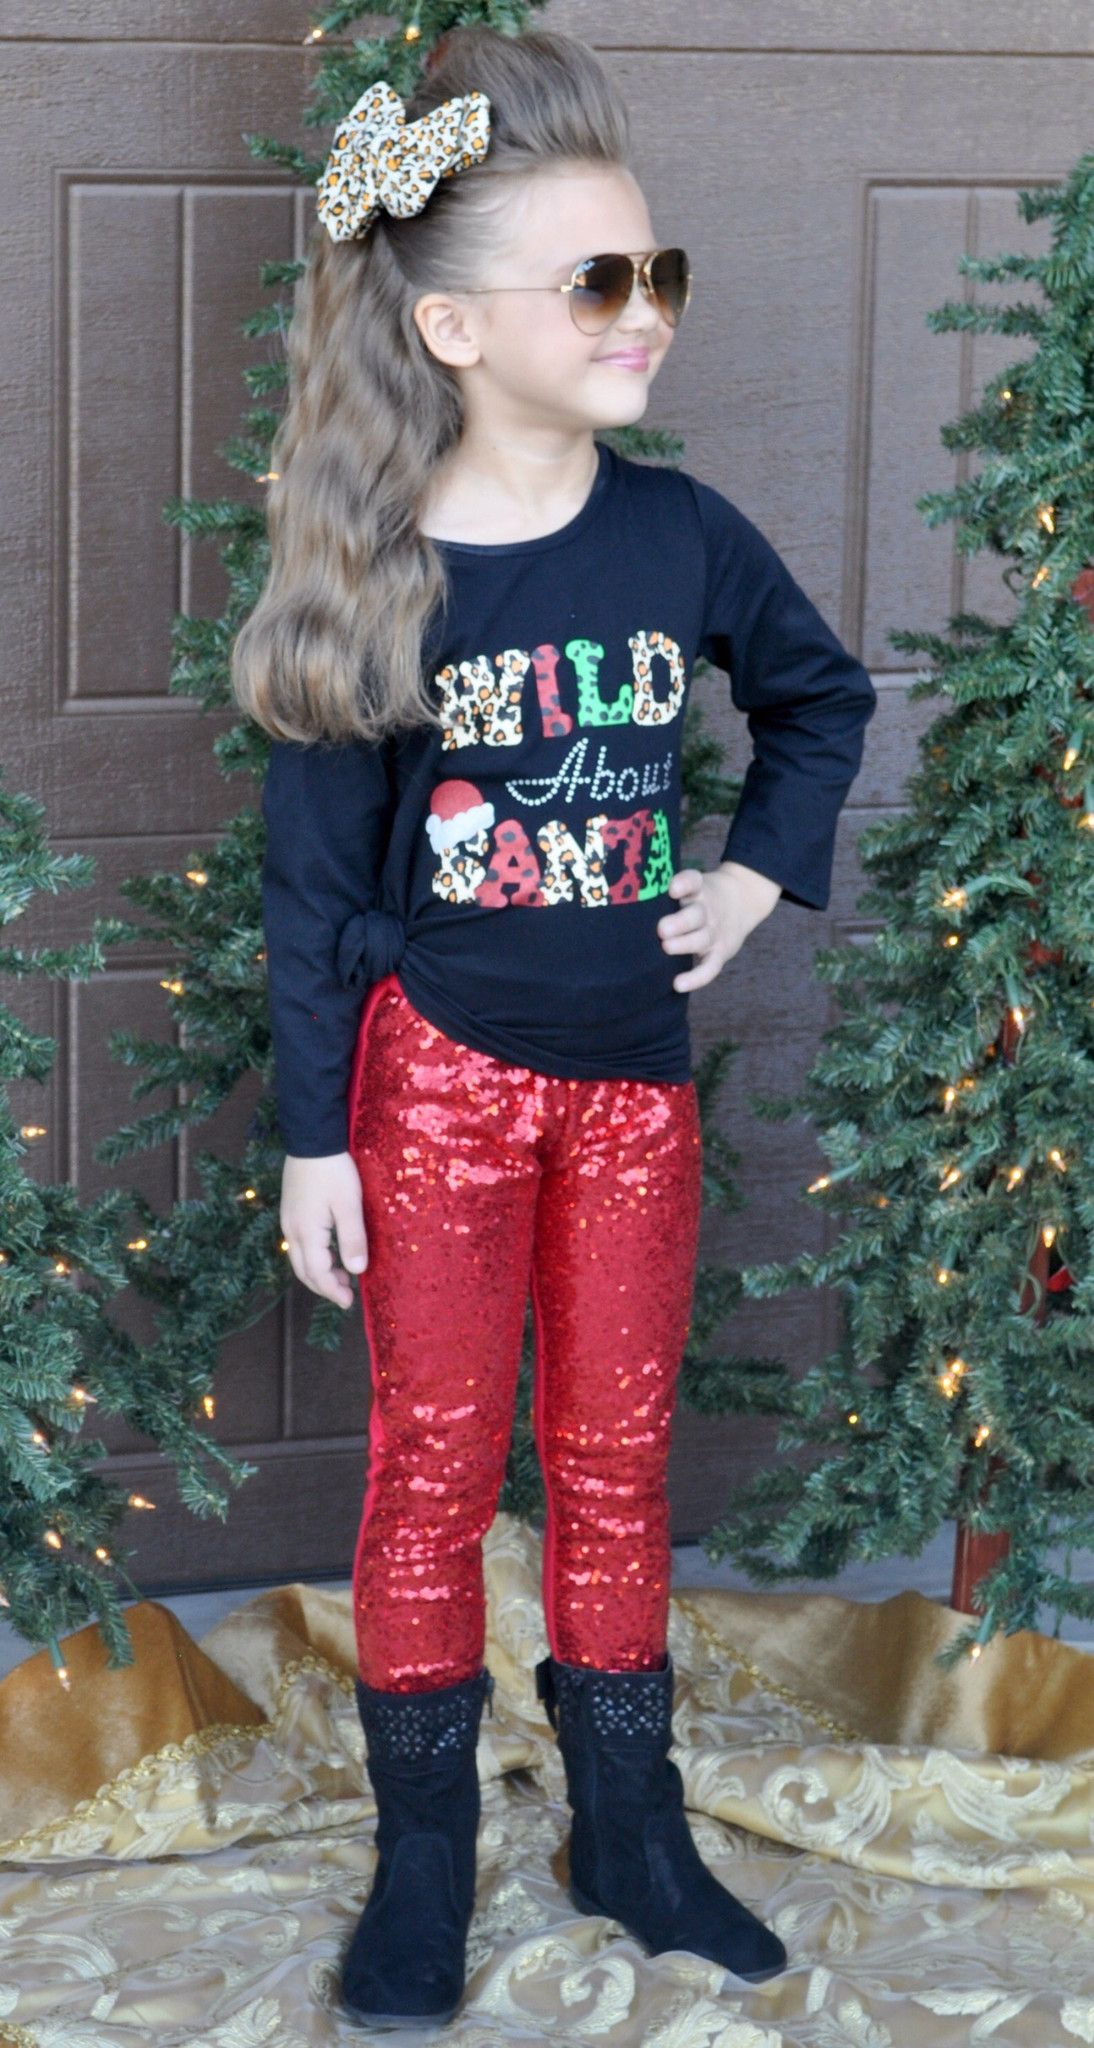 "The ""Wild About Santa"" boutique outfit is right on trend this holiday season! The soft and comfortable little girl's Christmas outfit is made of cotton and spandex for added comfort!  The sparkly red sequin leggings add that extra flair!   Any little fashionista will love wearing this for Christmas parties, photo shoots, Christmas Eve, Christmas Day, family pictures, or just everyday all winter!     Top quality and true boutique style at wholesale price!     This outfit runs true to size so…"